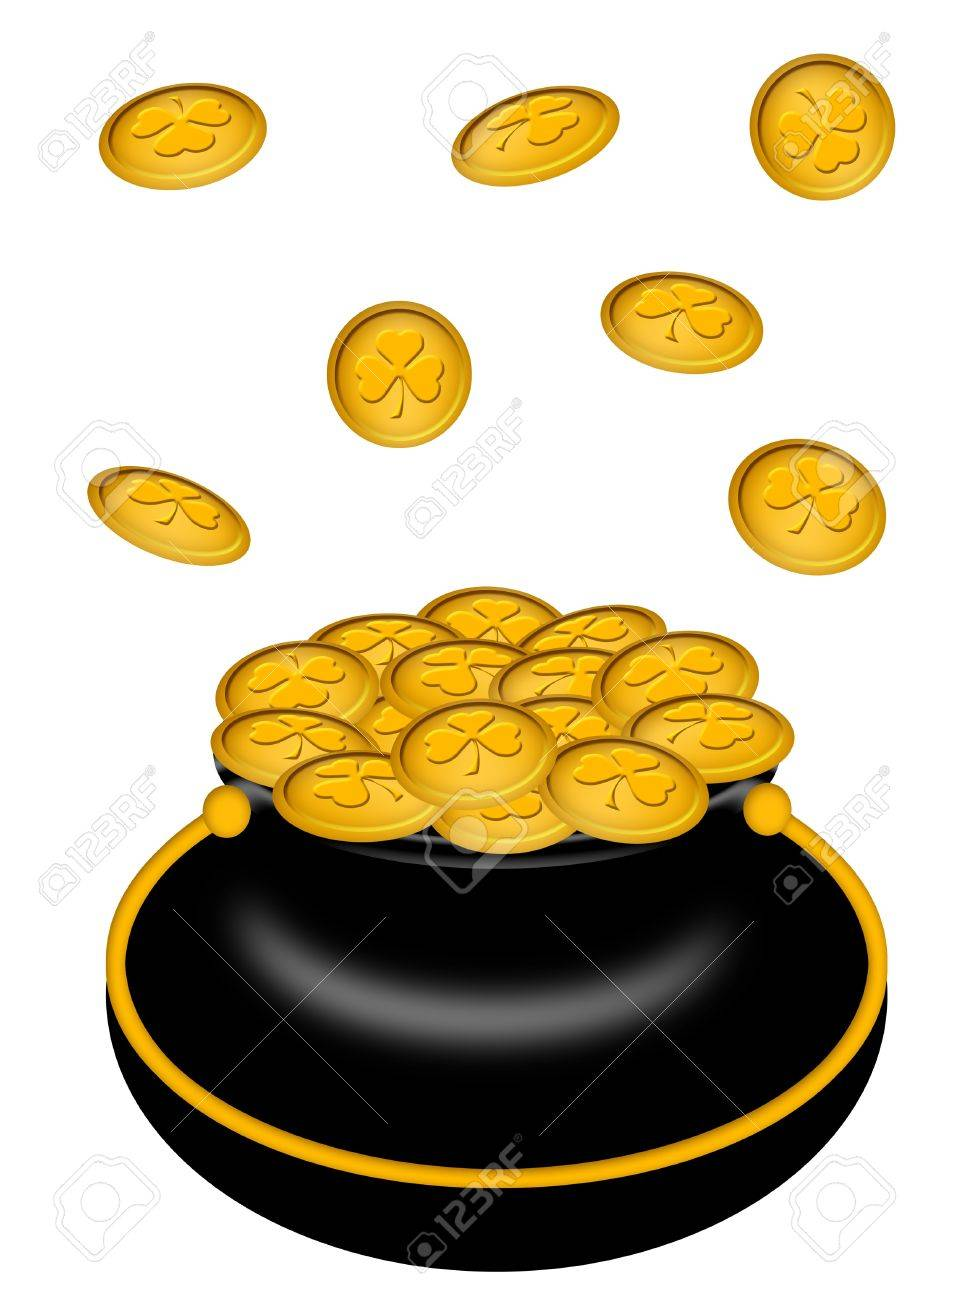 Saint Patricks Day Pot of Gold with Shamrock Coins Illustration Stock Illustration - 8937988